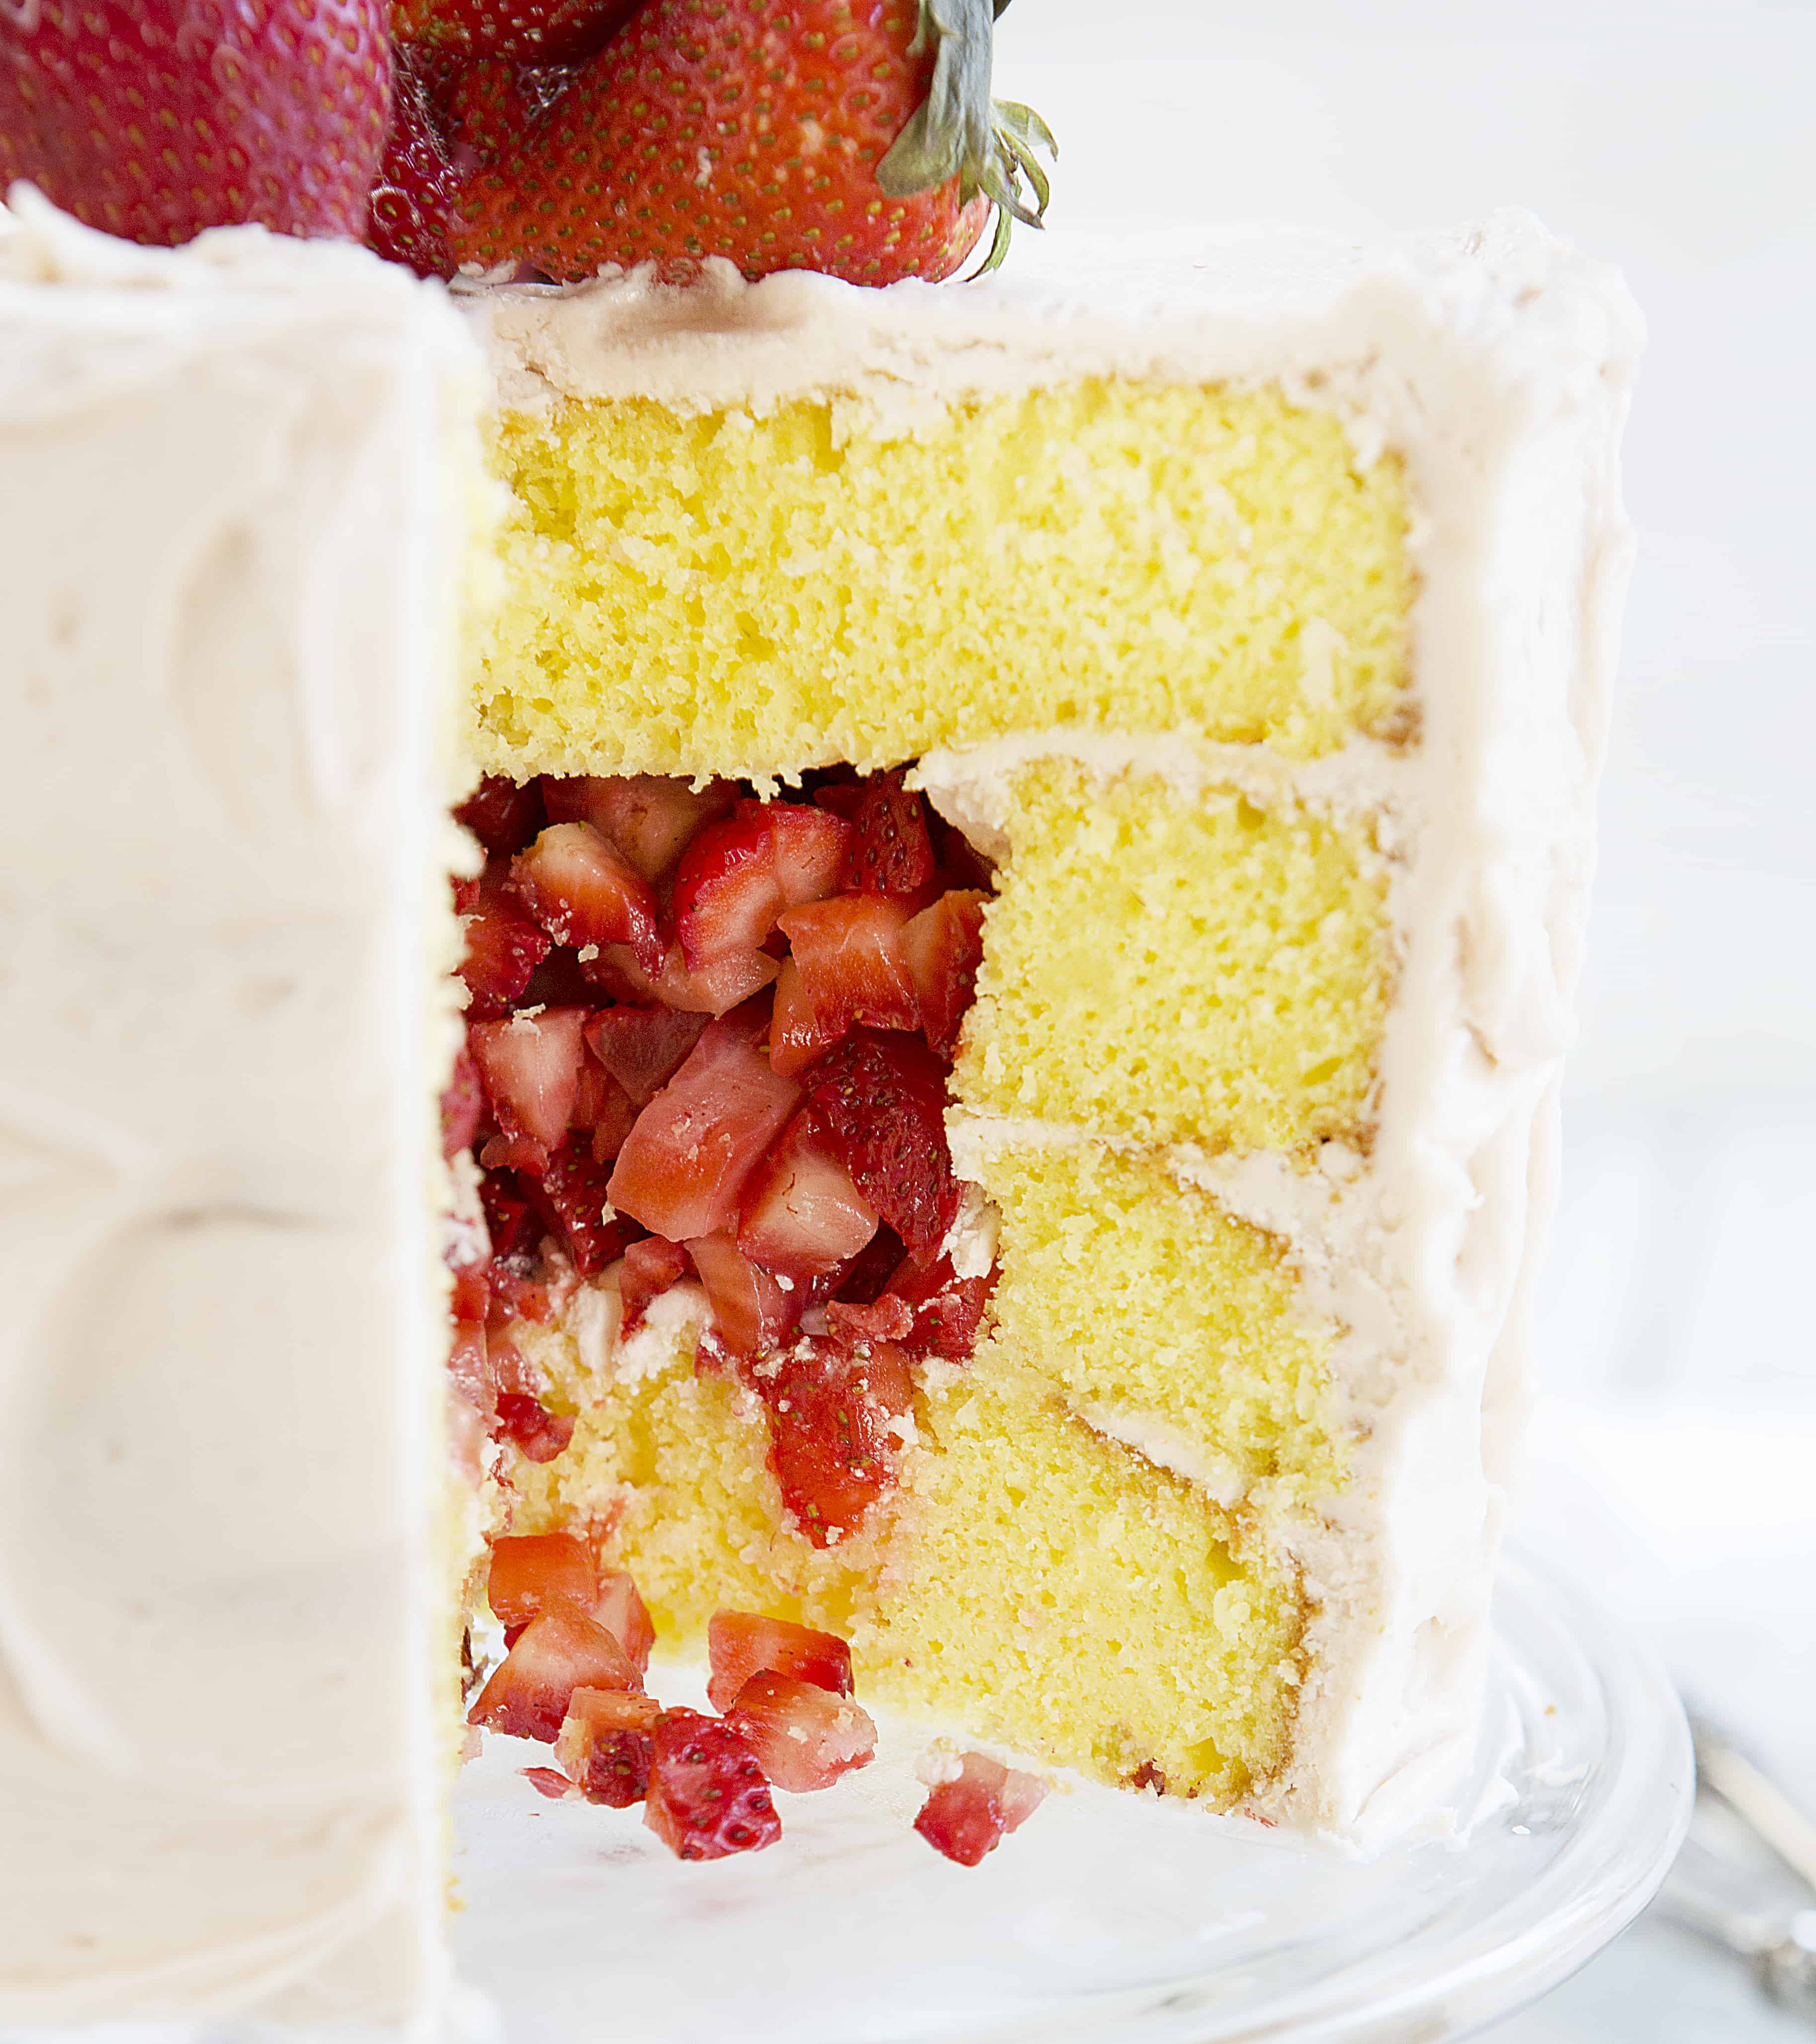 Lemon Cake with a fruity Surprise Inside!